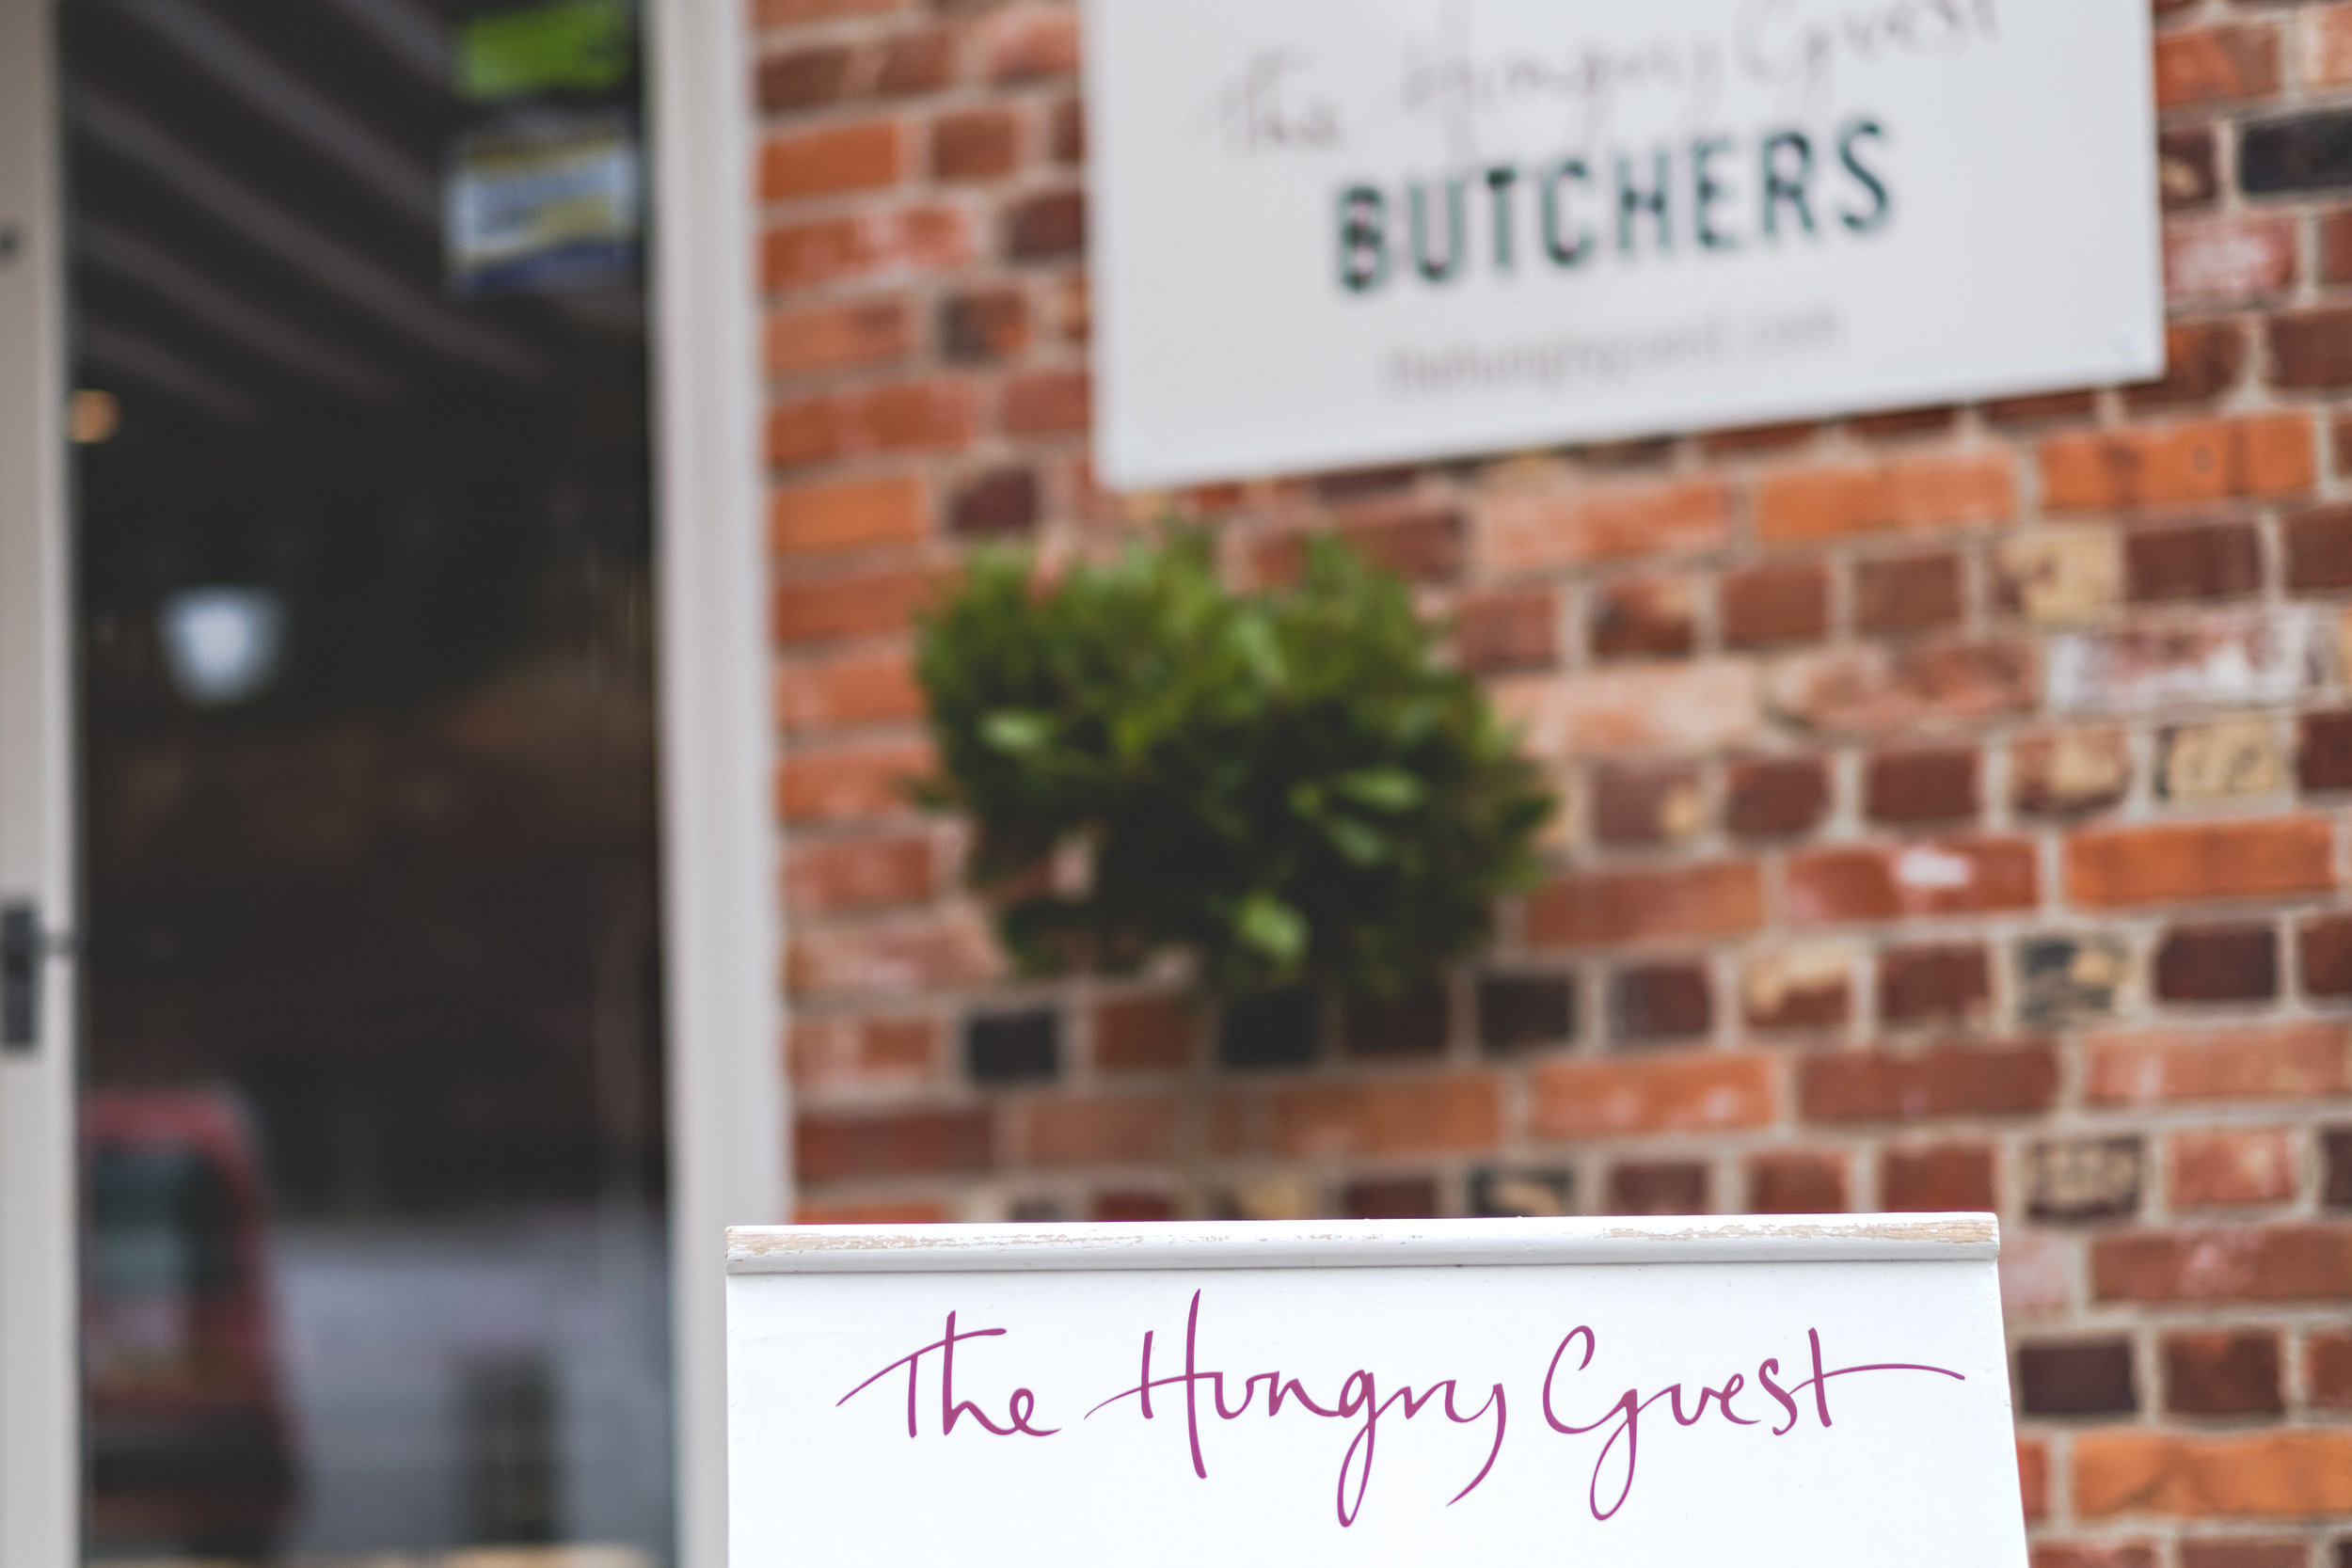 The Hungry Guest Butchers, Petworth